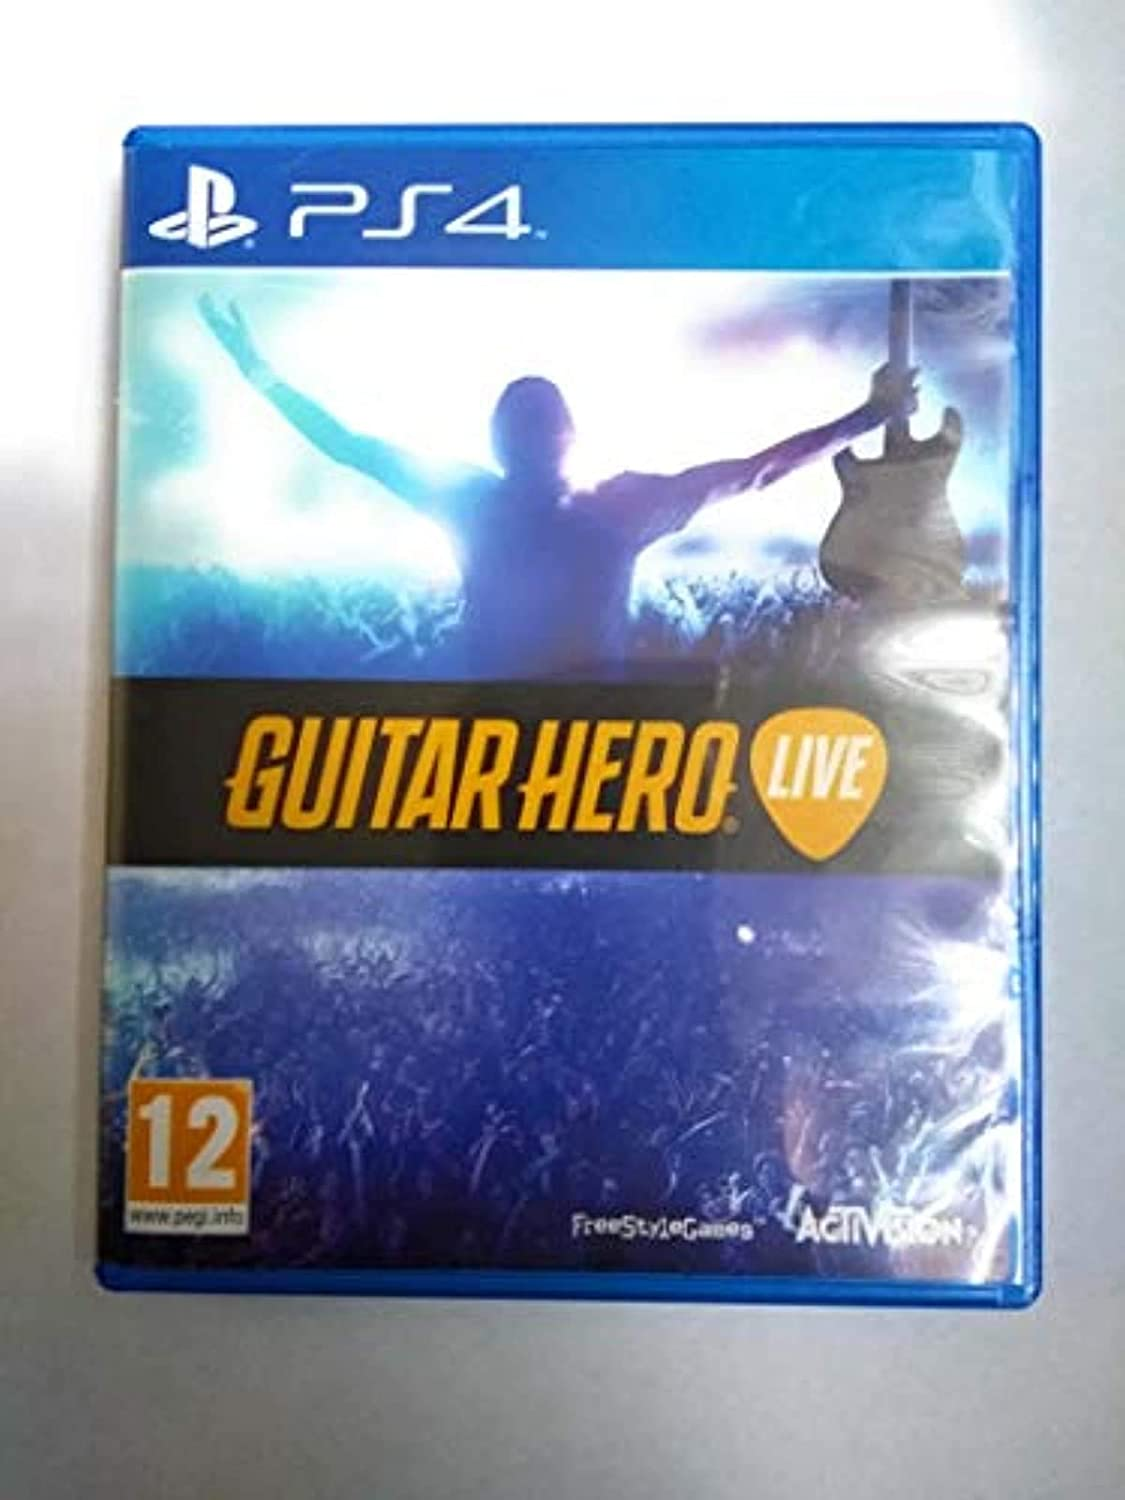 PS4 Guitar Spring new work one after another Hero Live ONLY - Max 82% OFF GAME